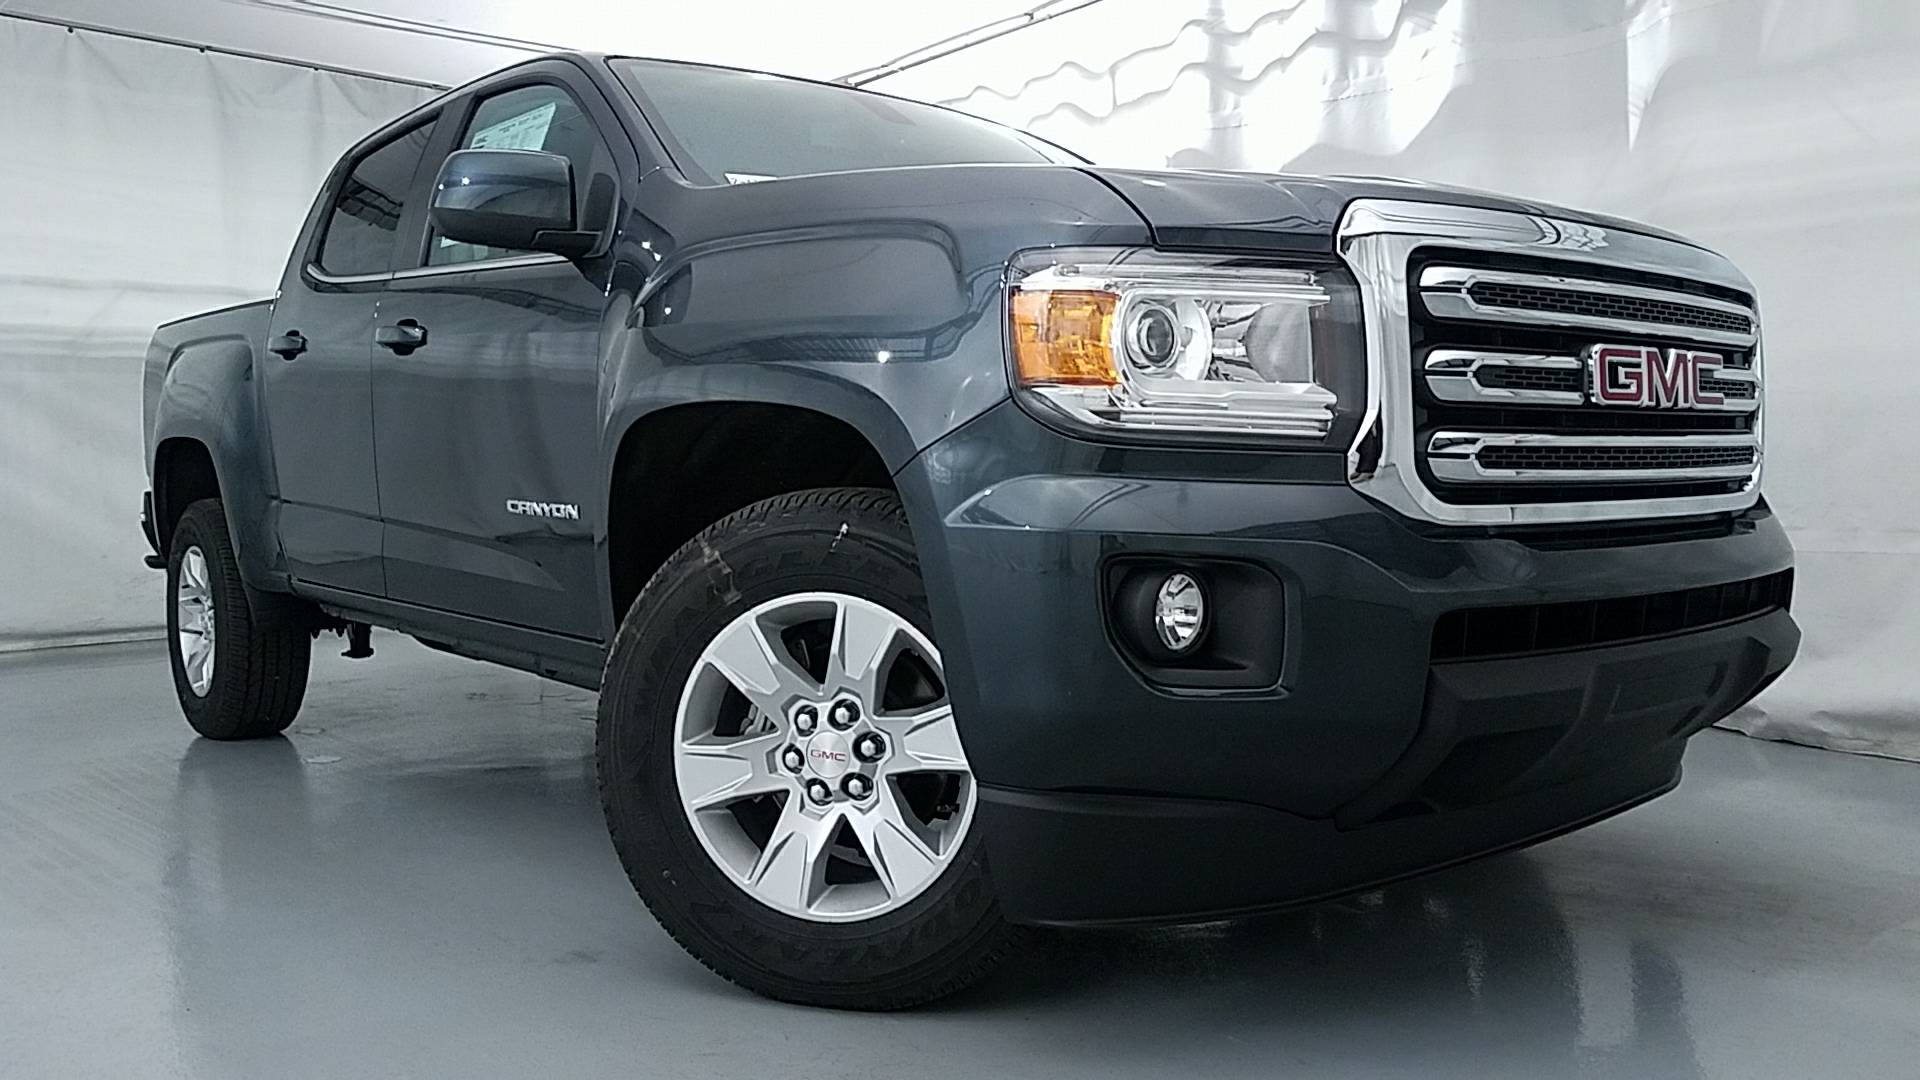 2018 GMC Canyon in Hammond New Truck for Sale Near Baton Rouge